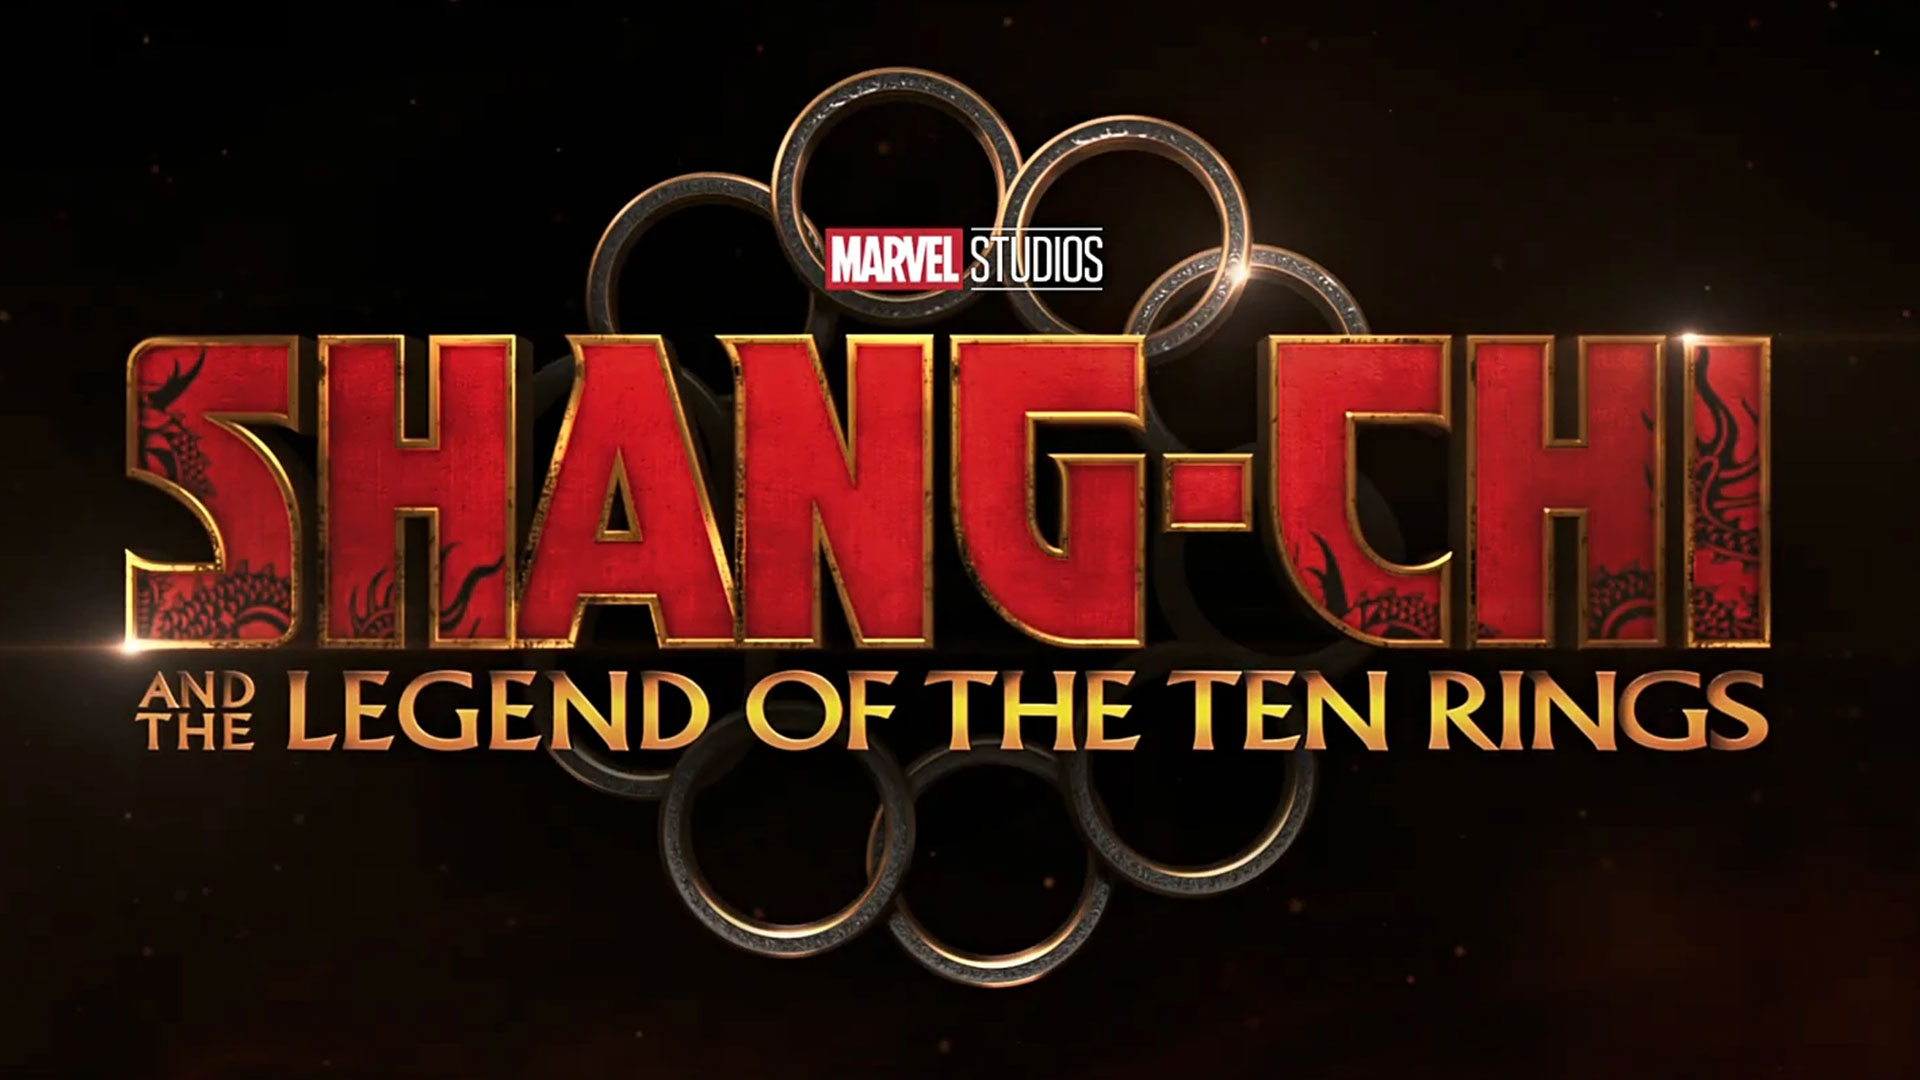 HD wallpaper Shang-Chi and the Legend of the Ten Rings review